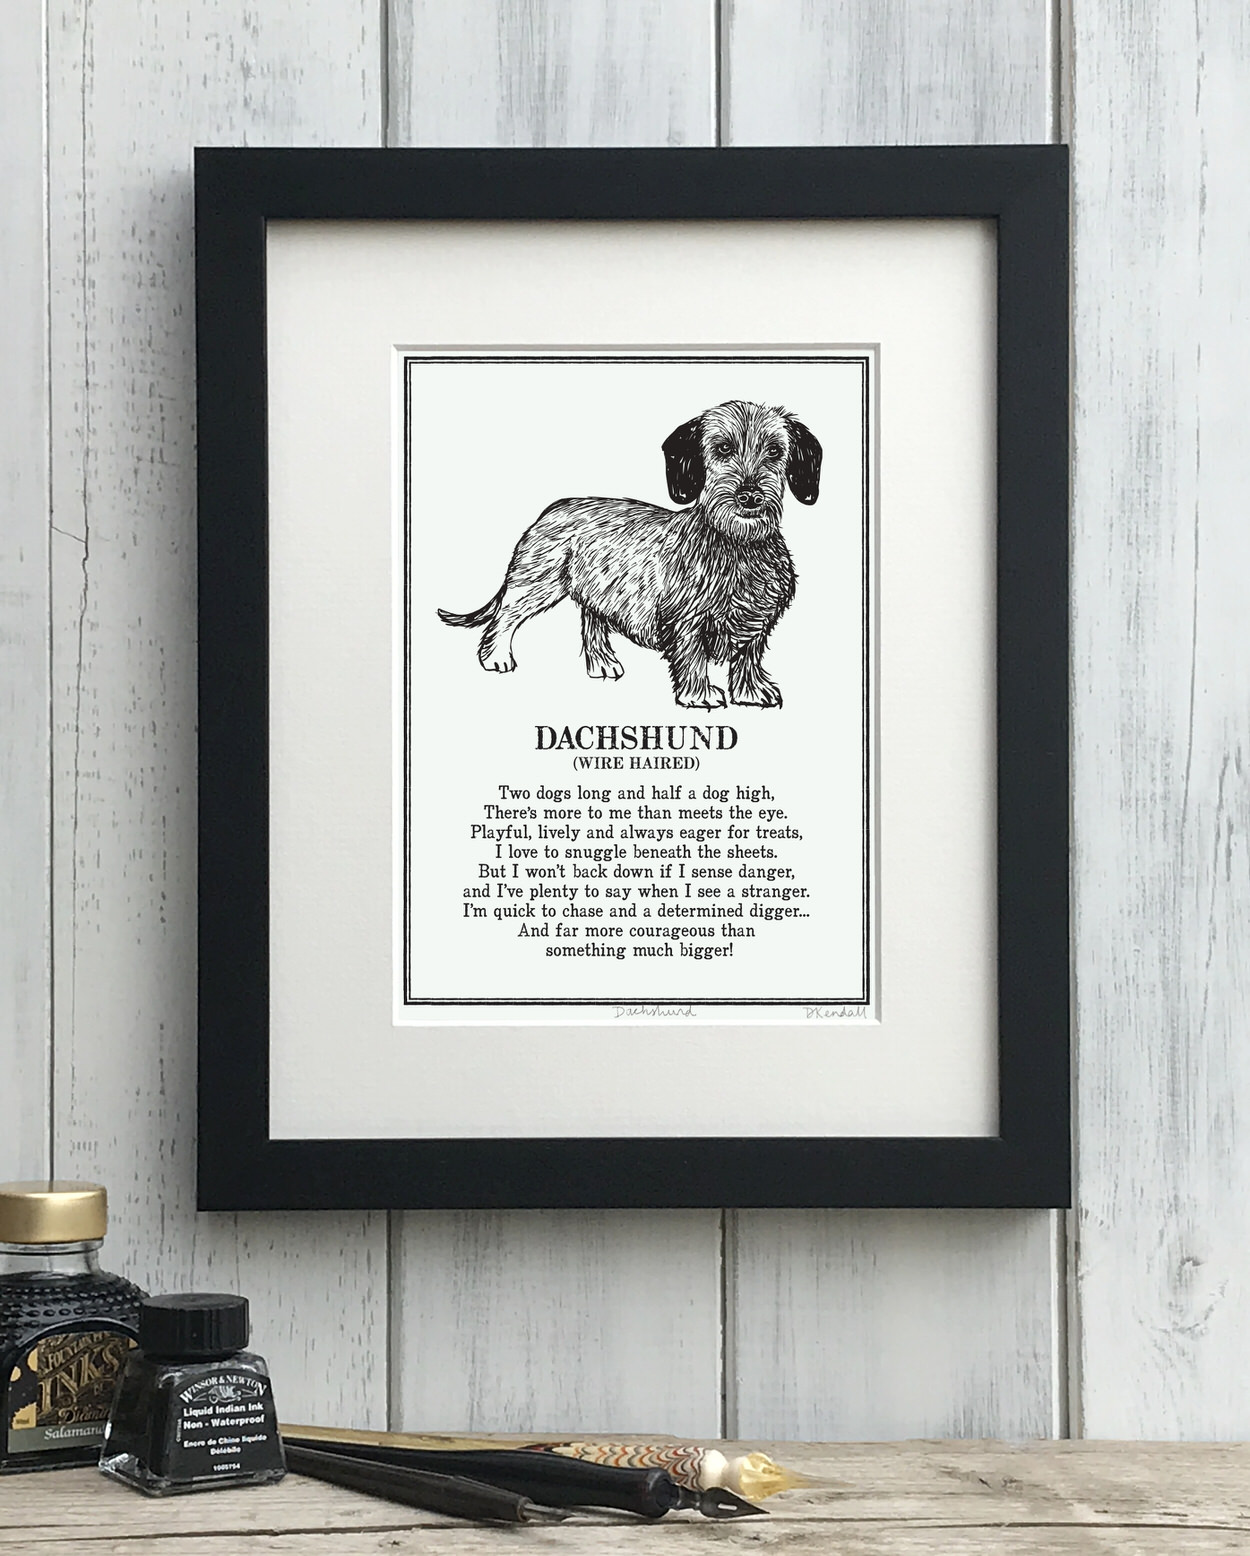 Wire Haired Dachshund print illustrated poem by The Enlightened Hound